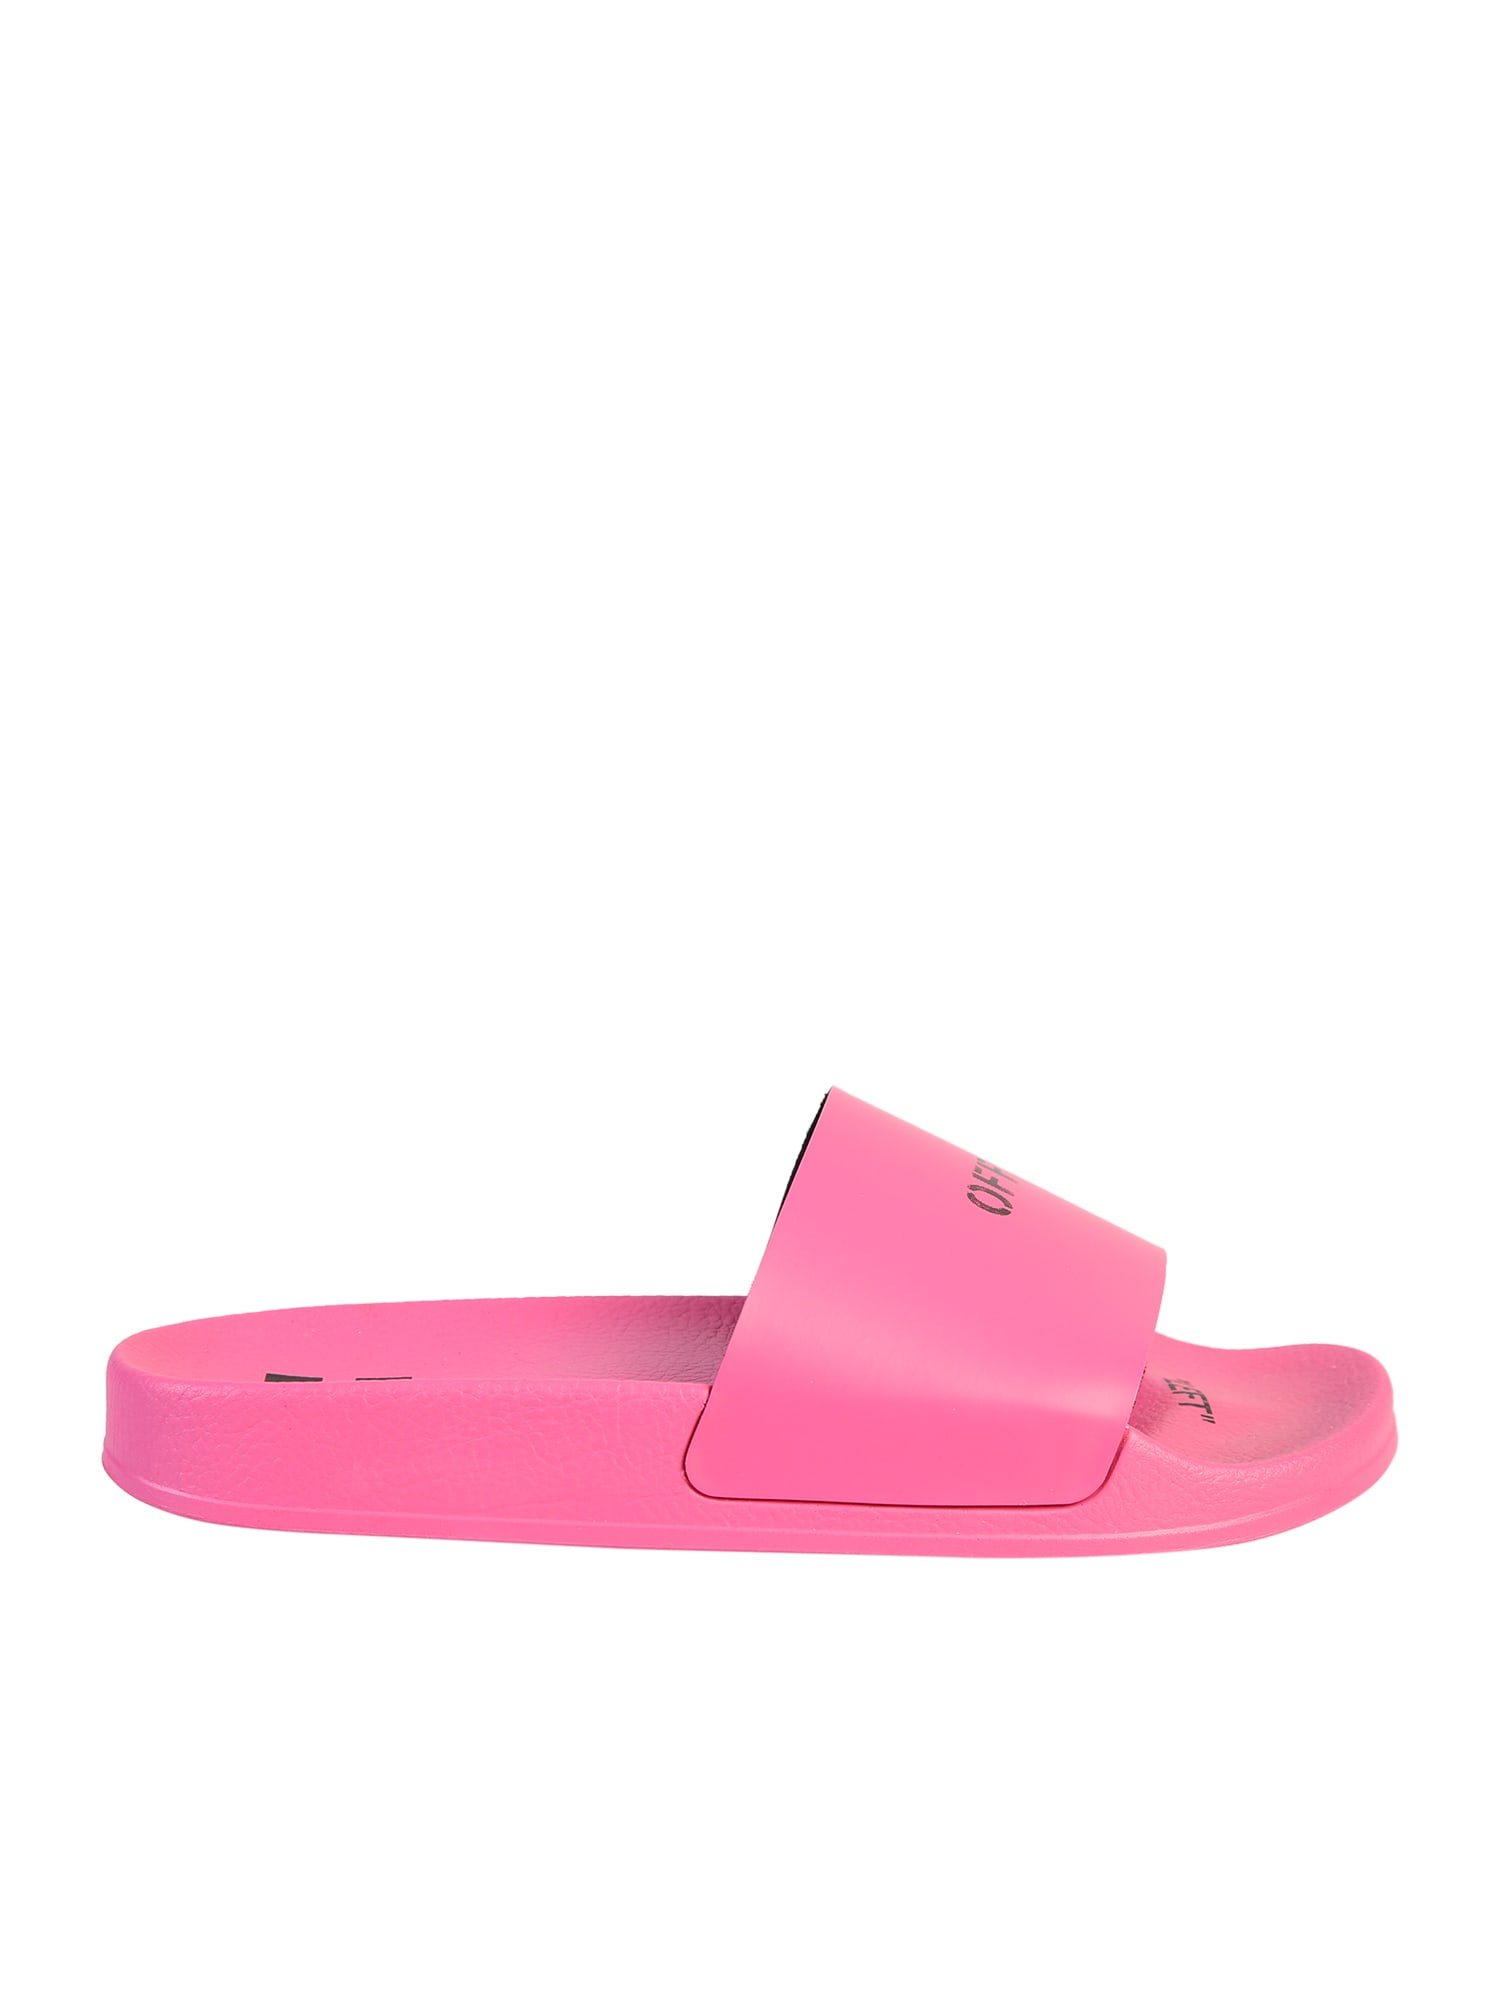 Off-White PRINTED SLIDE SANDALS